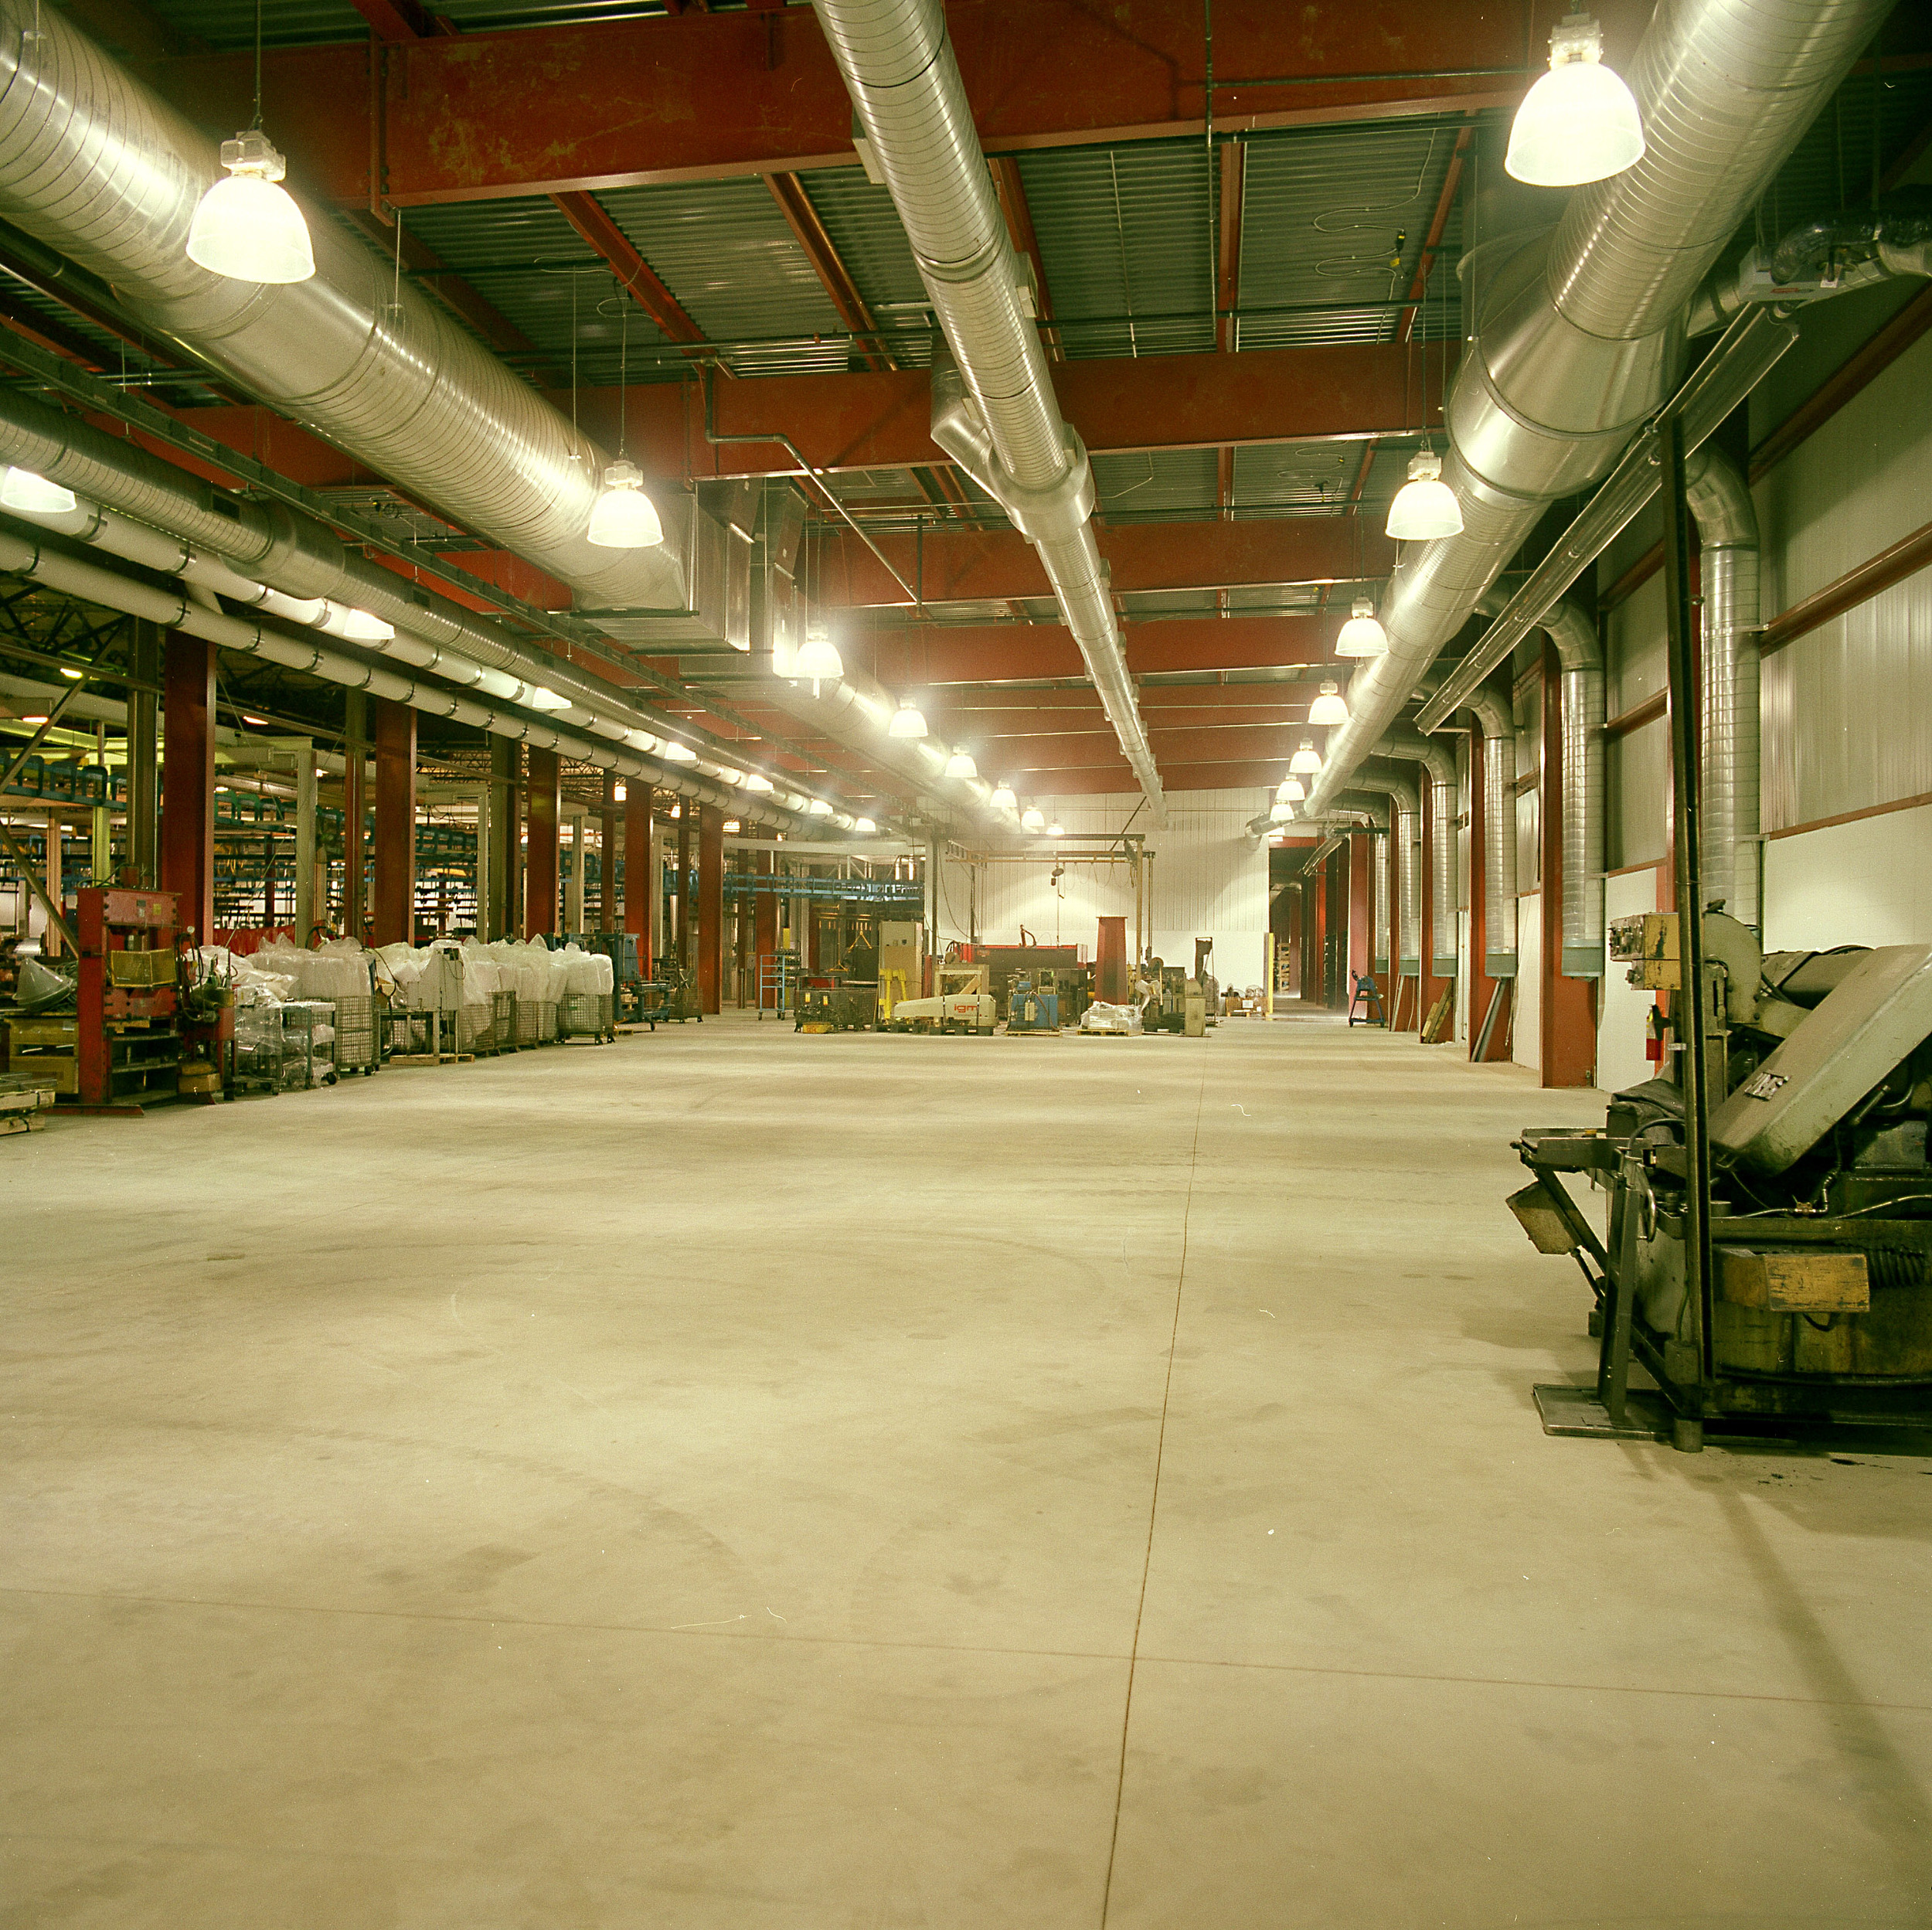 Inside view of an industrial/ municipal example